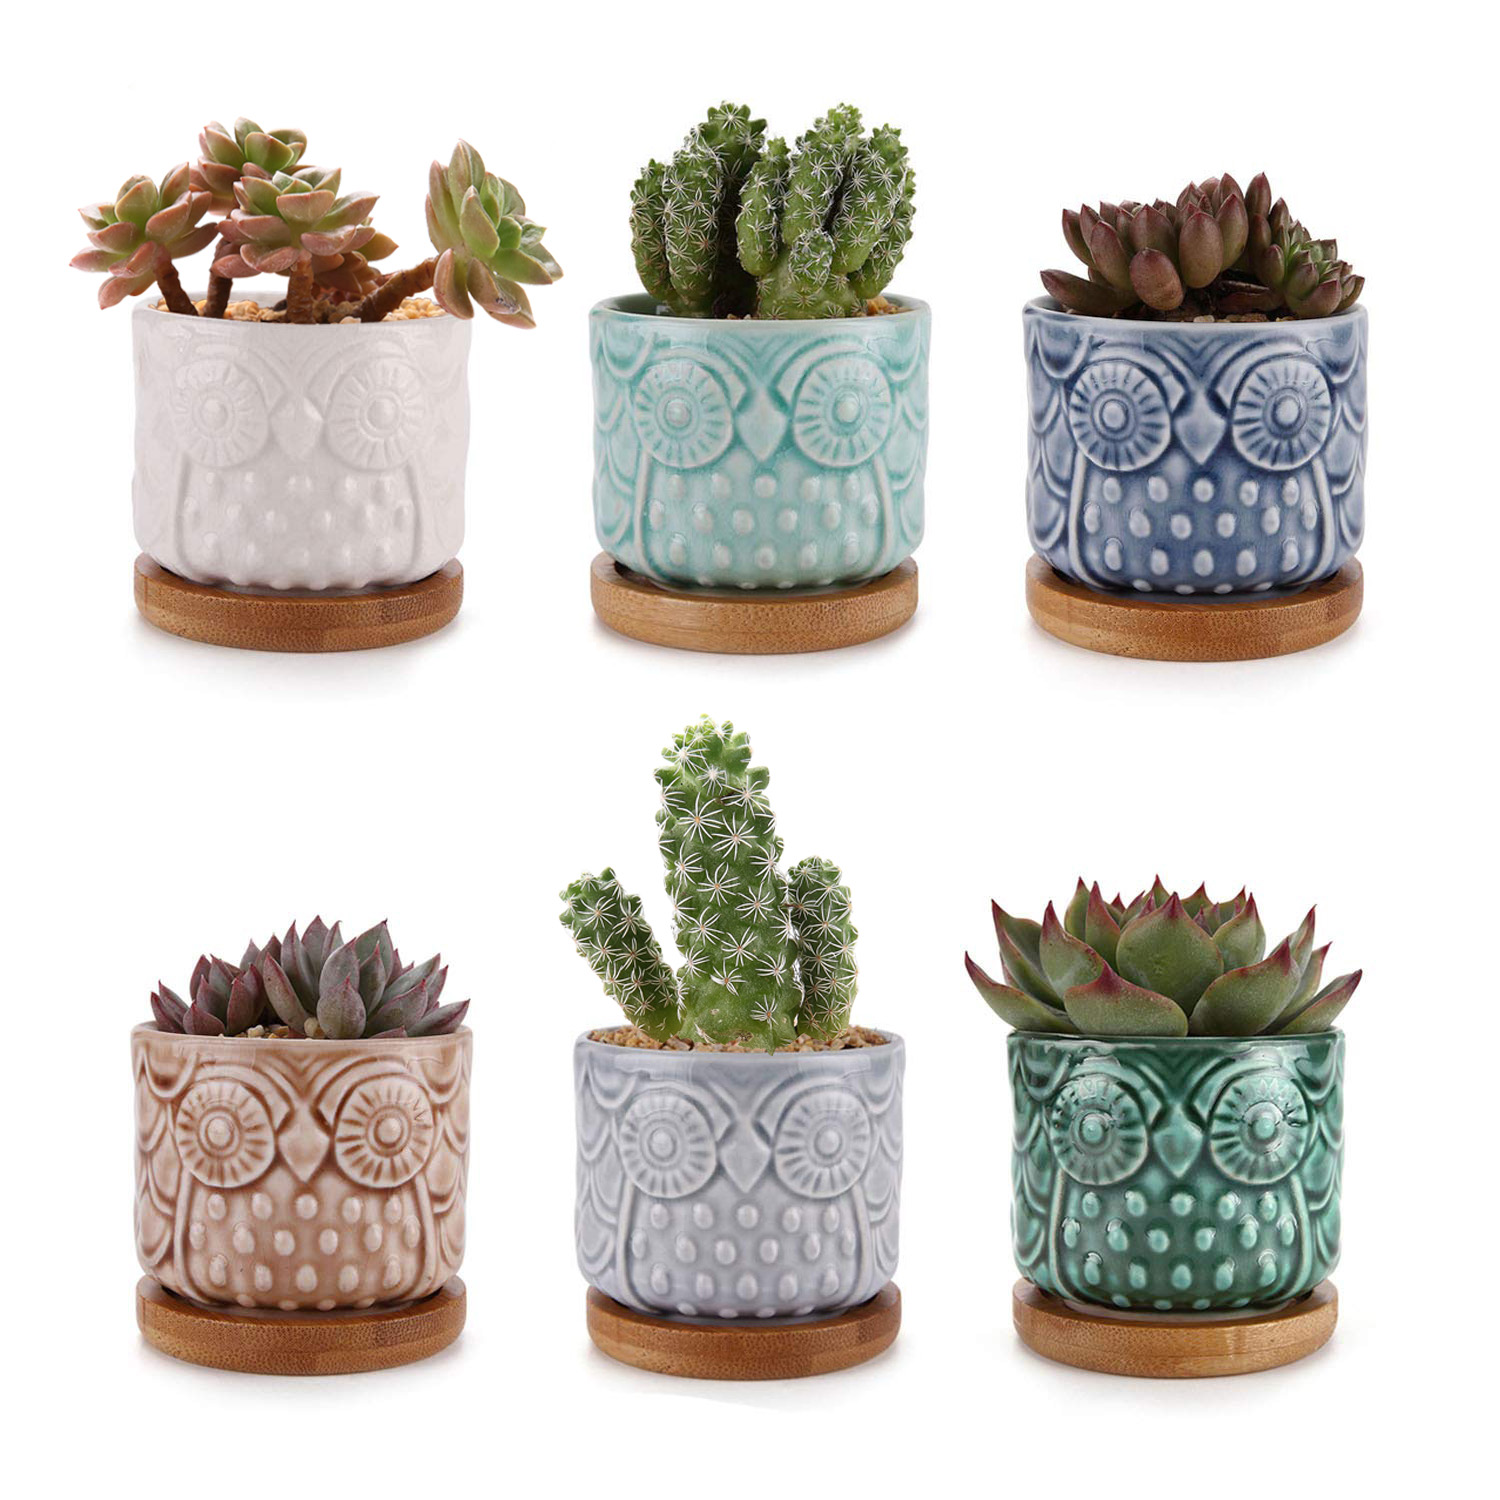 Plante En Pot Details About T4u 2 6 Inch Ceramic Owl Succulent Cactus Planter Pot Set With Bamboo Tray Full